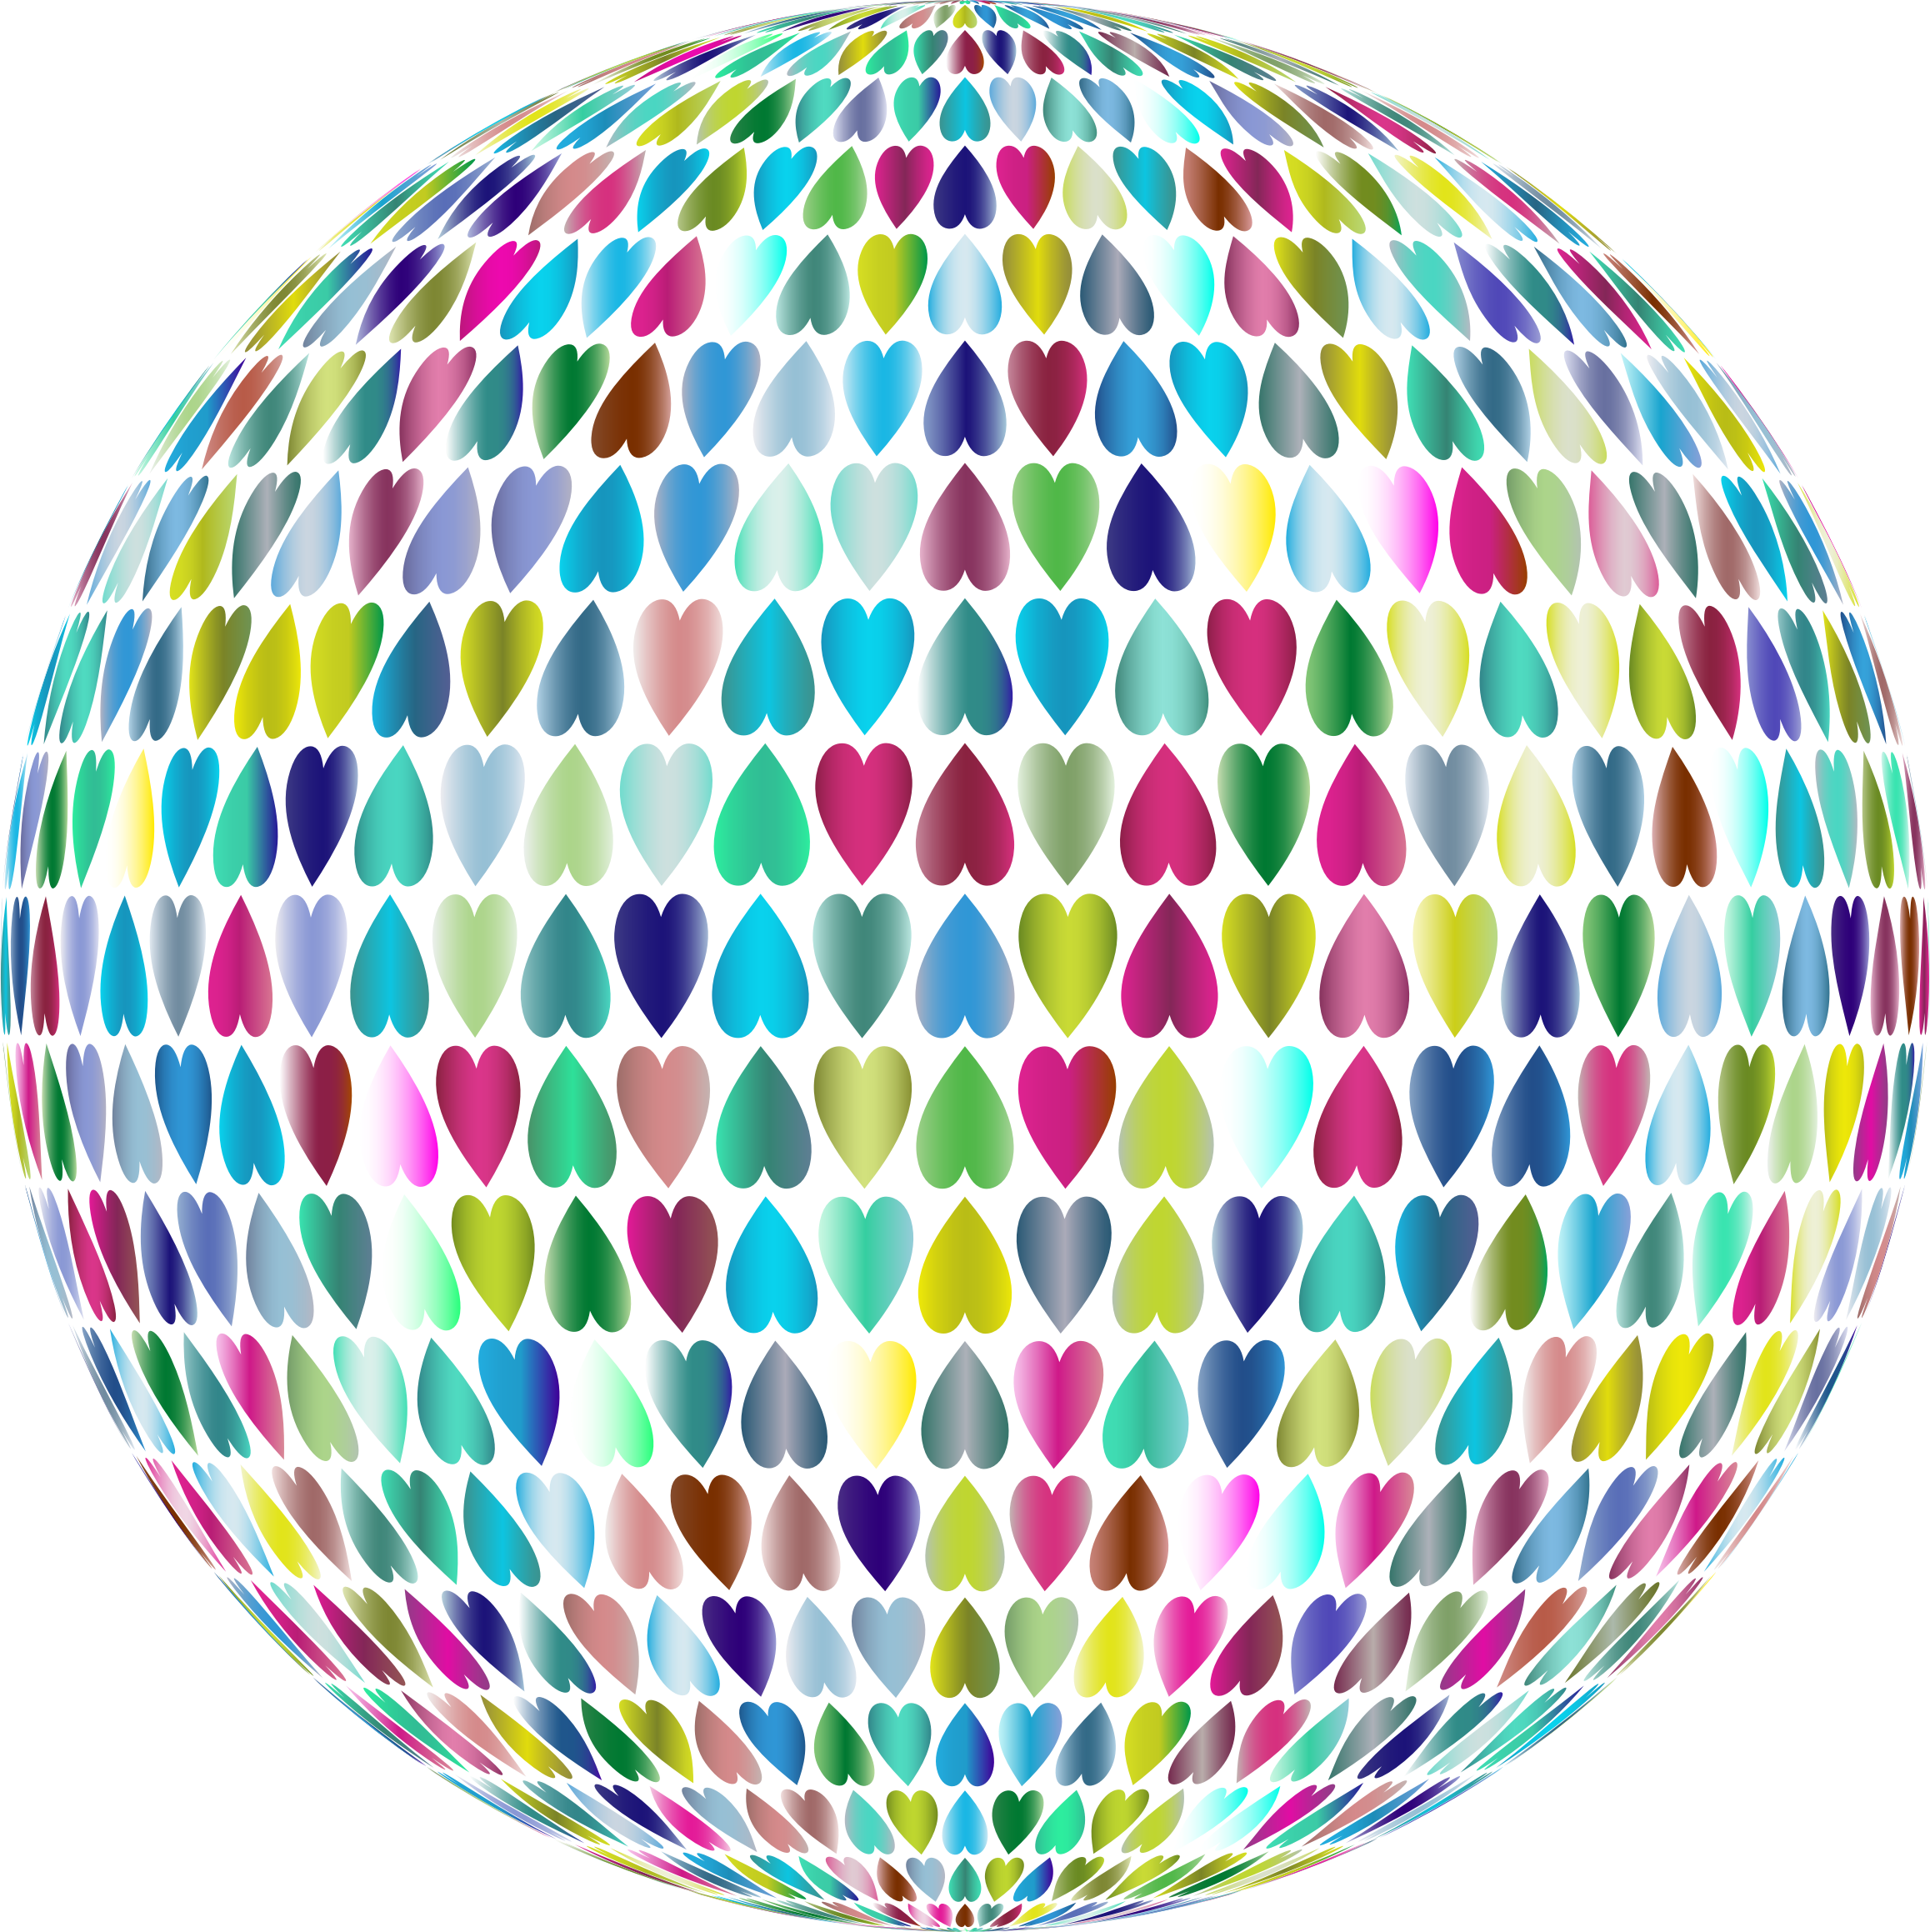 Prismatic Alternating Hearts Sphere 3 No Background by GDJ